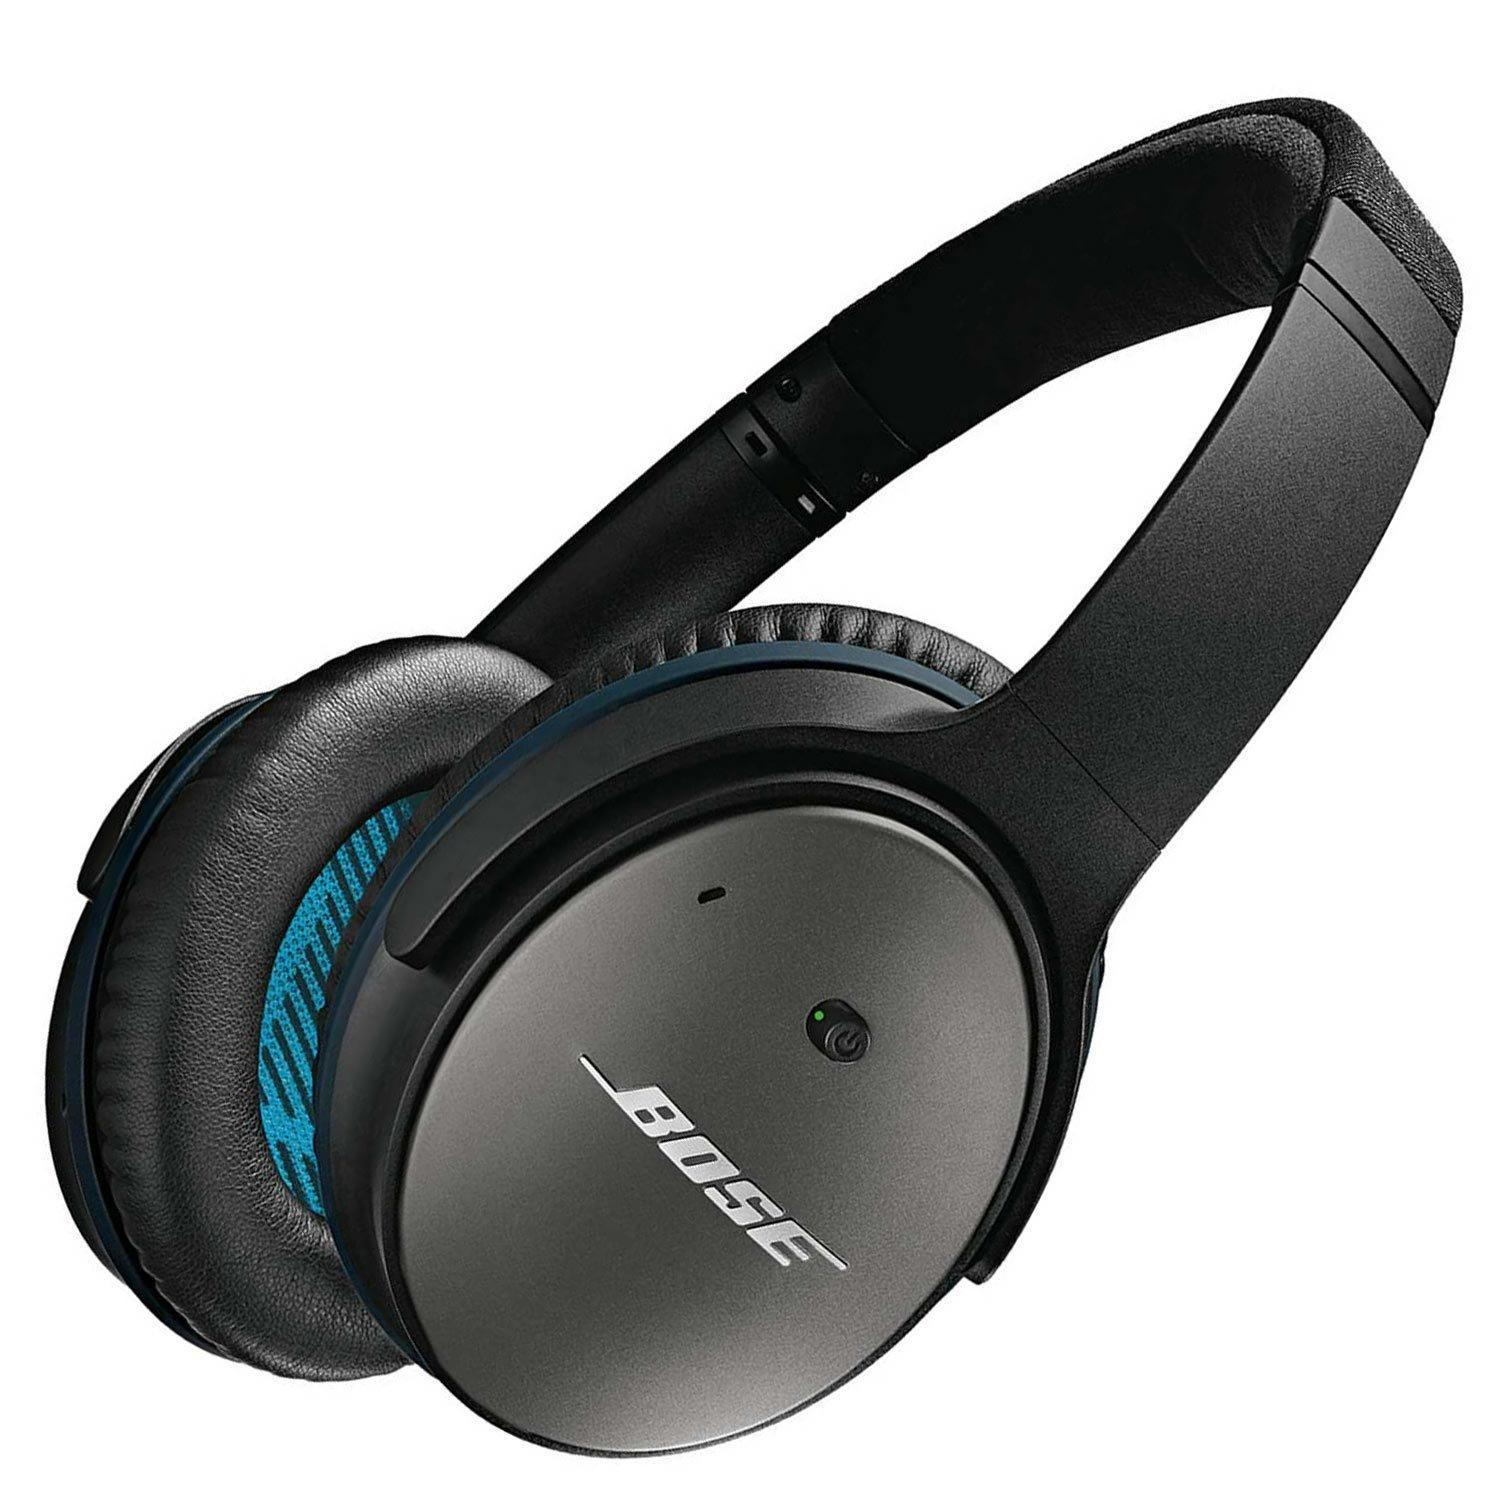 $251.71 Bose ® QuietComfort 25 Acoustic Noise Cancelling Headphones for Apple devices- Black